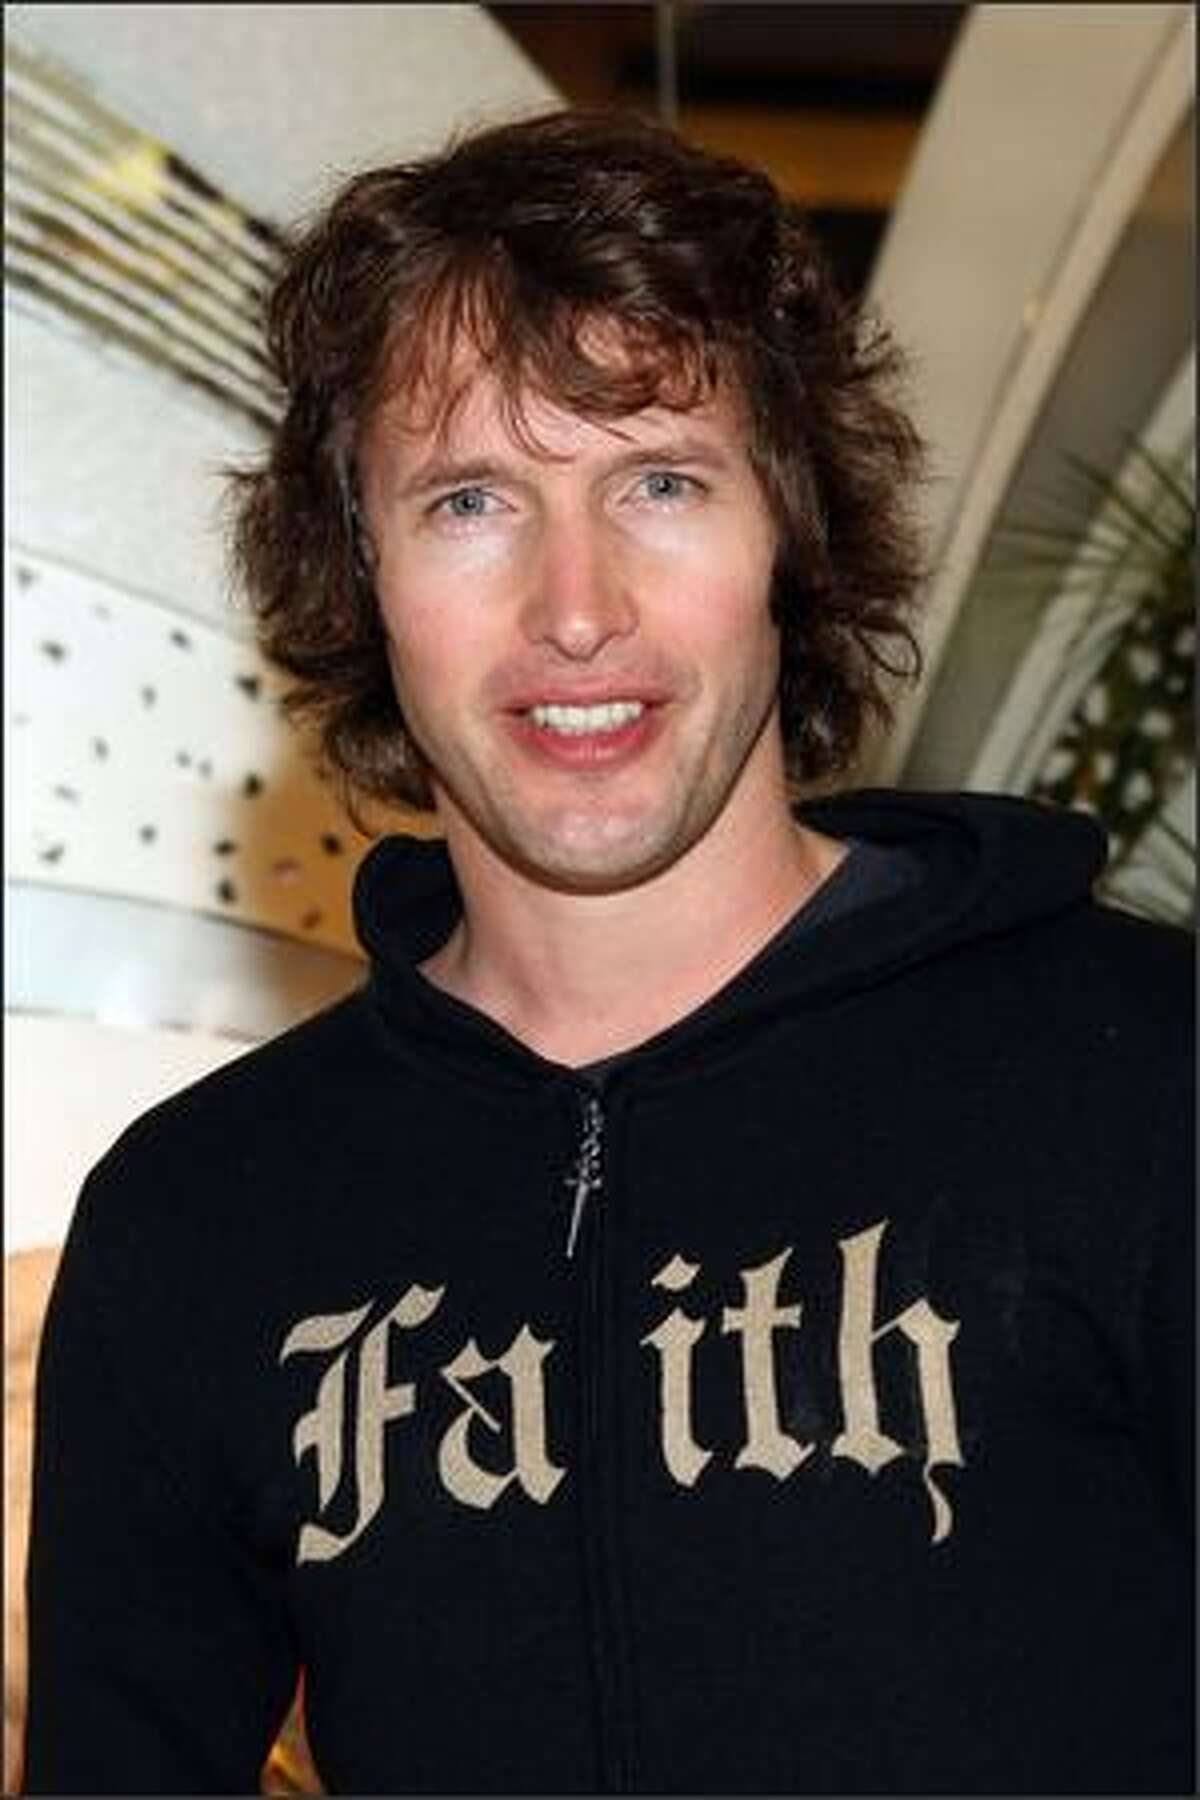 Singer James Blunt arrives for a special performance for the Miracle Africa International Foundation Charity sponsored by Chopard at the VIP Room in Cannes, France.